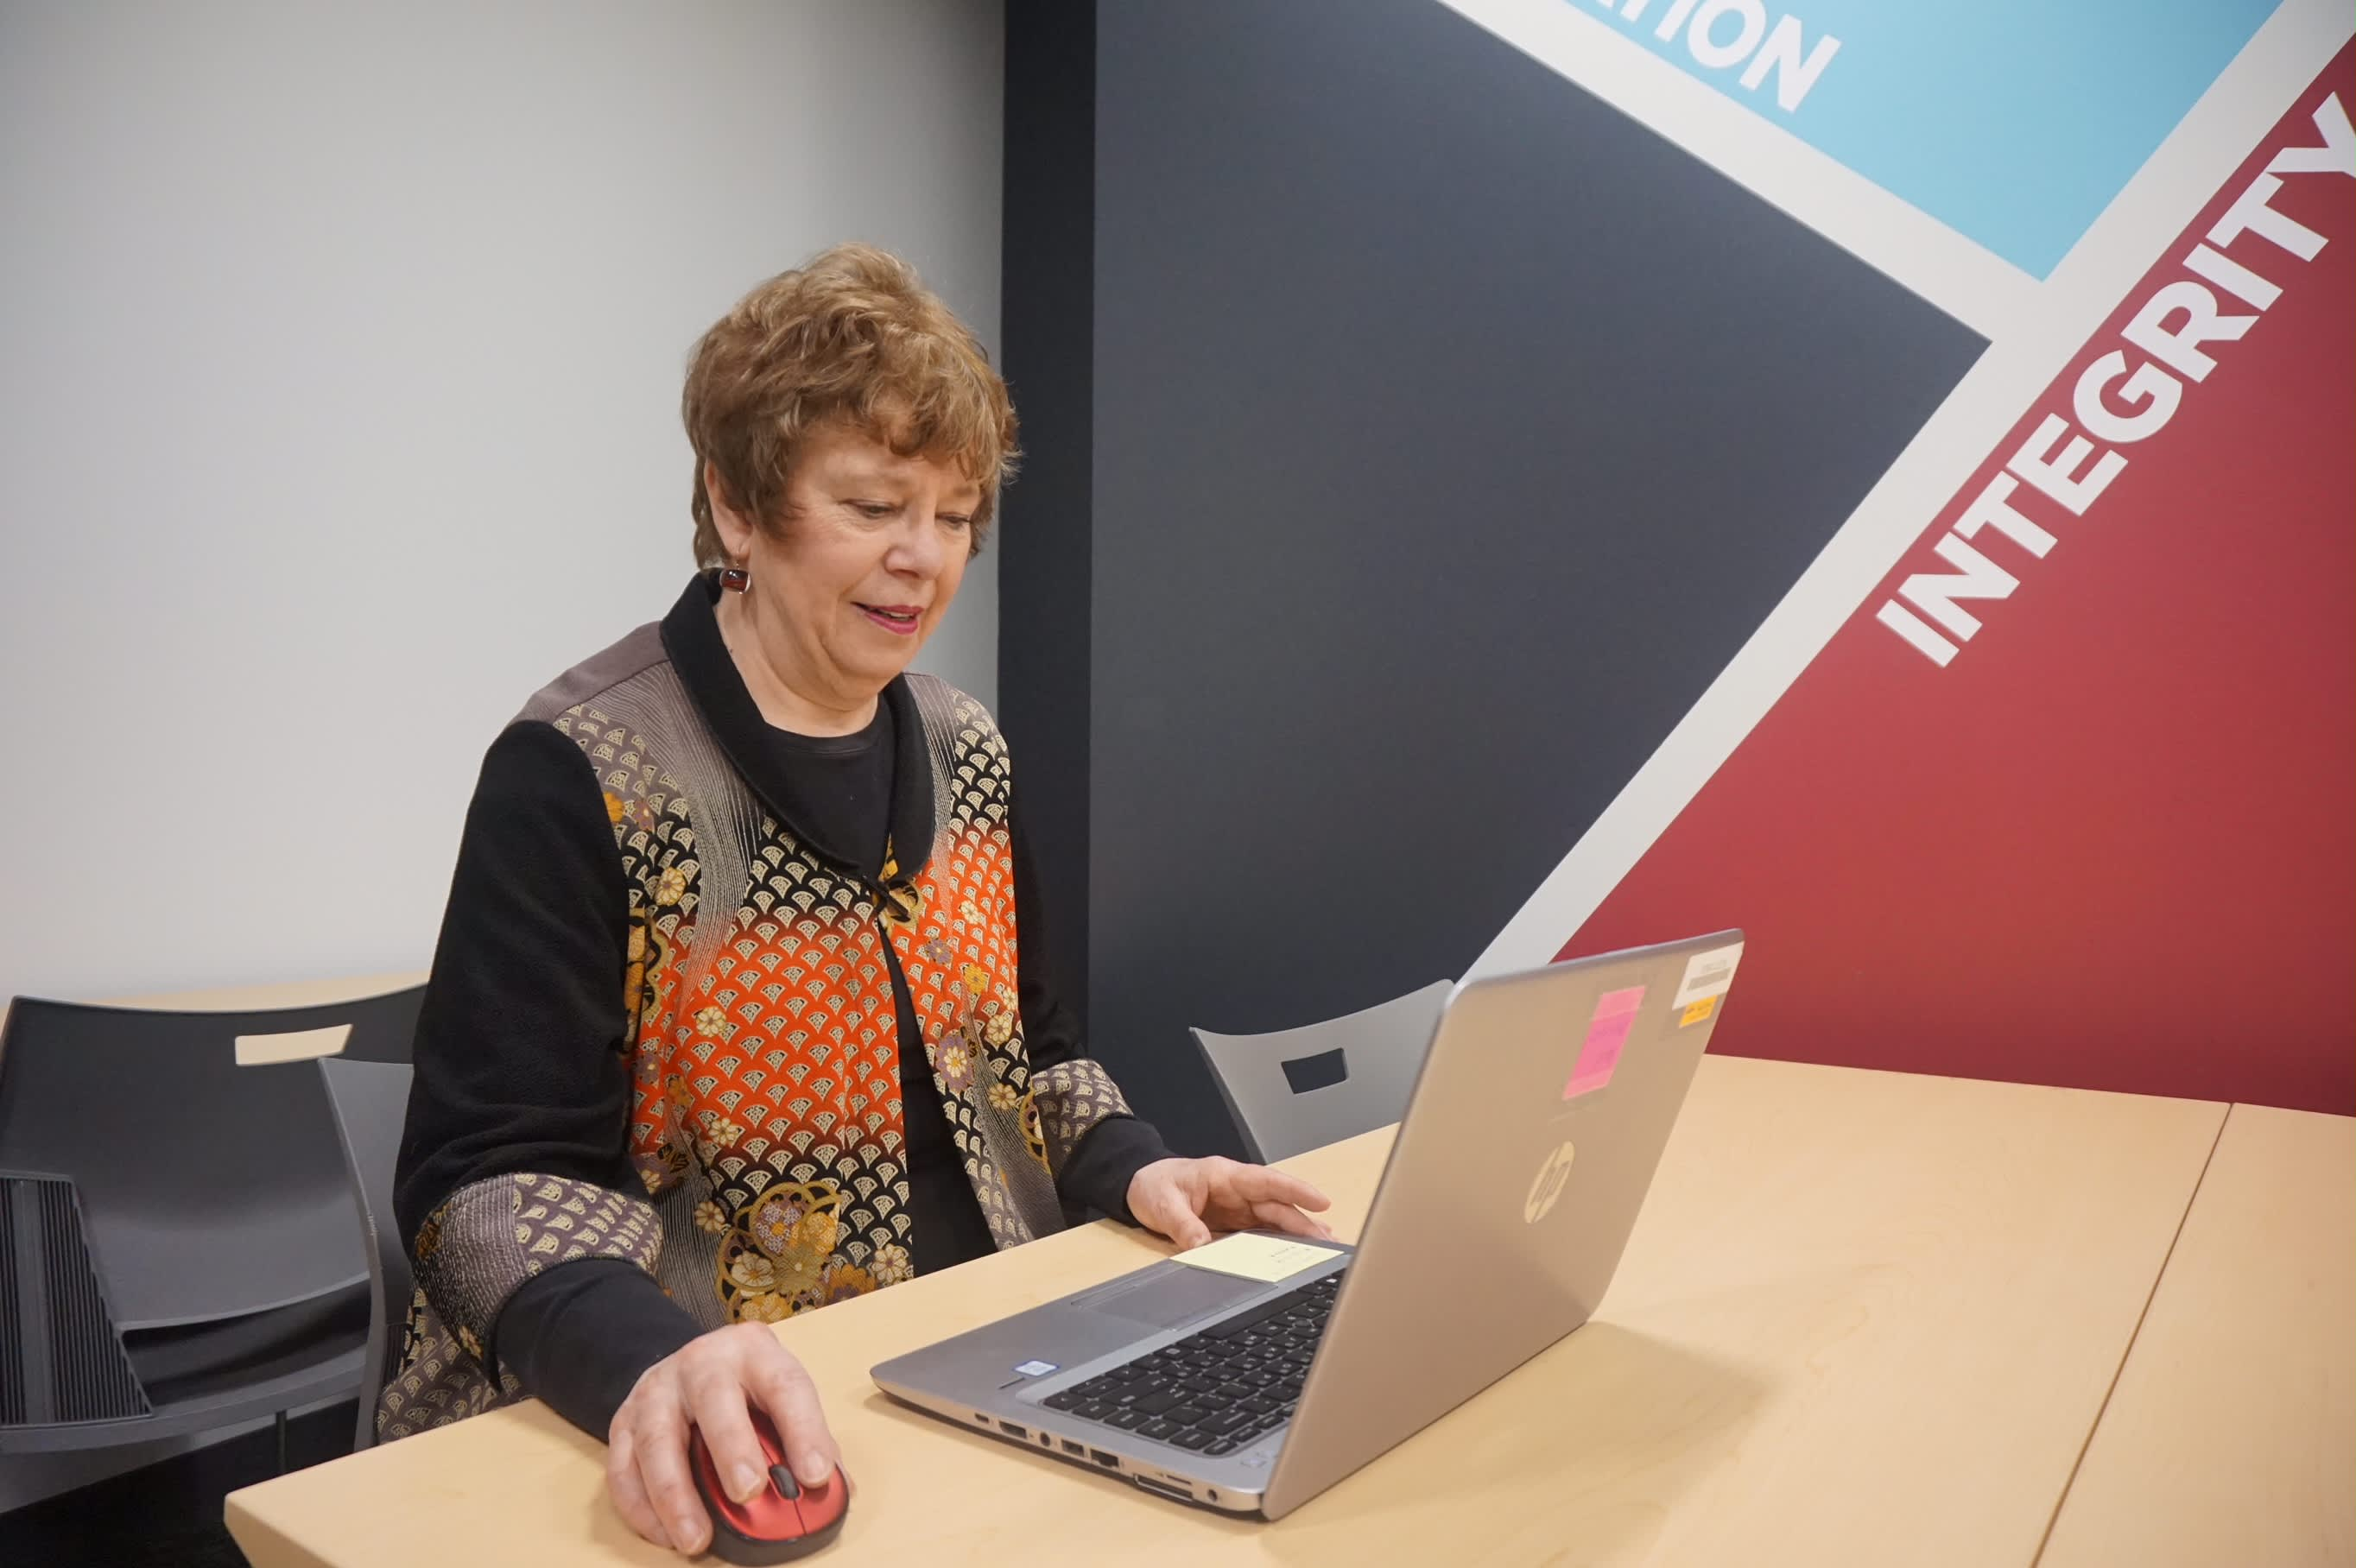 At age 61, Michele Meagher was hired as a corporate communications specialist by Tufts Health Plan. She is part of a fast-growing segment of those remaining in the workplace well into their golden years.